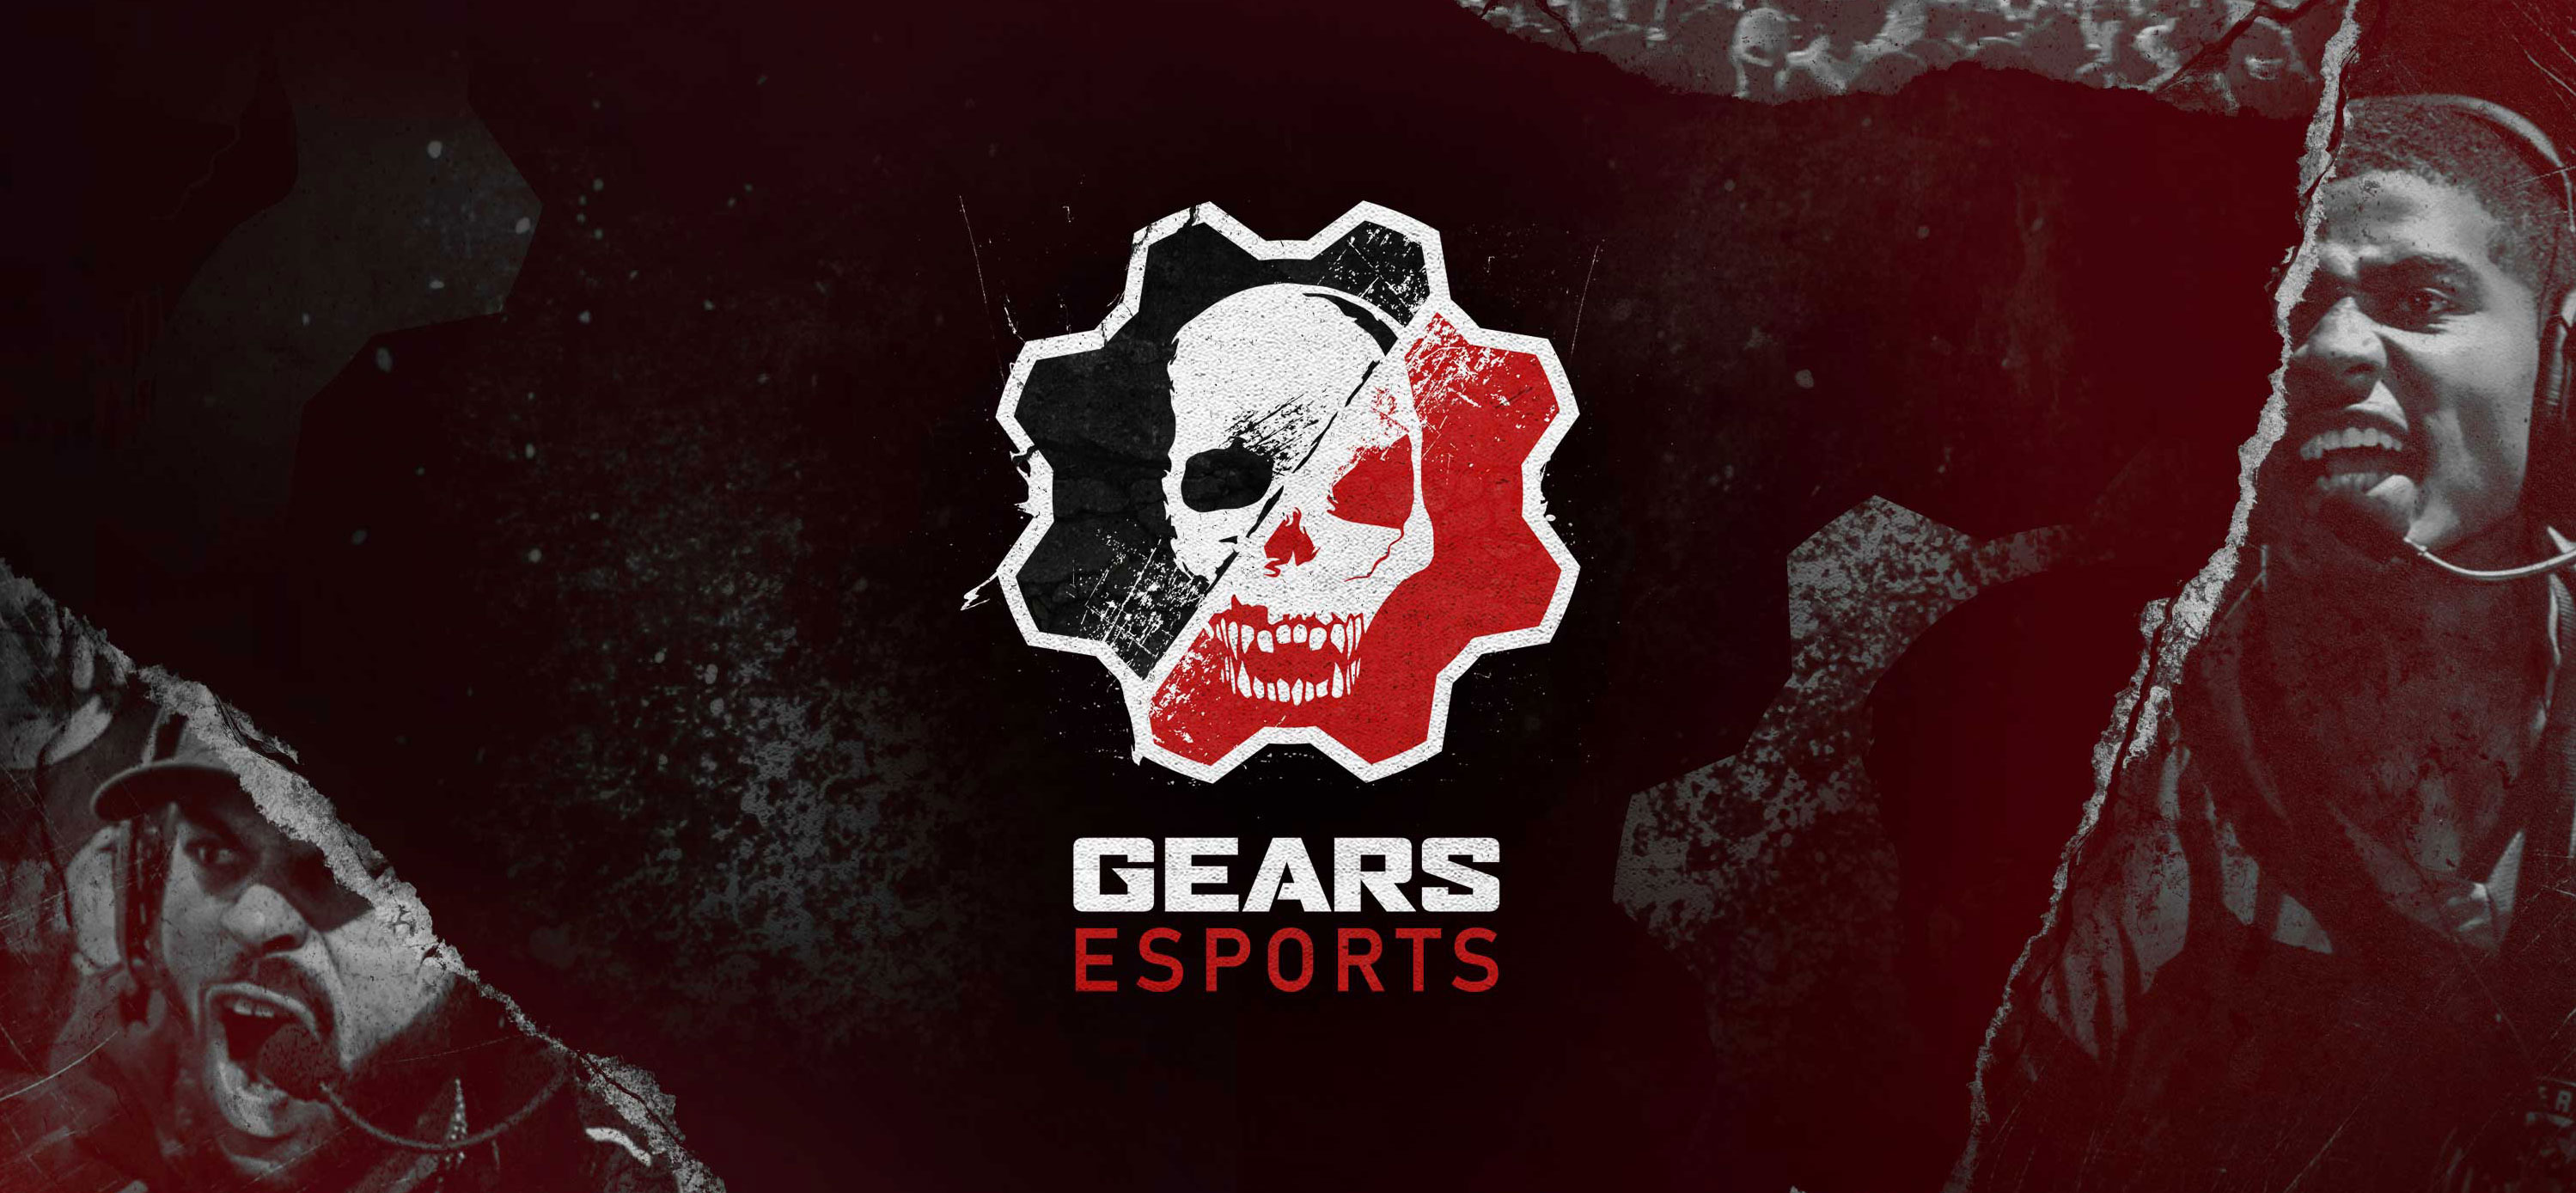 Gears 5 Esports Overview